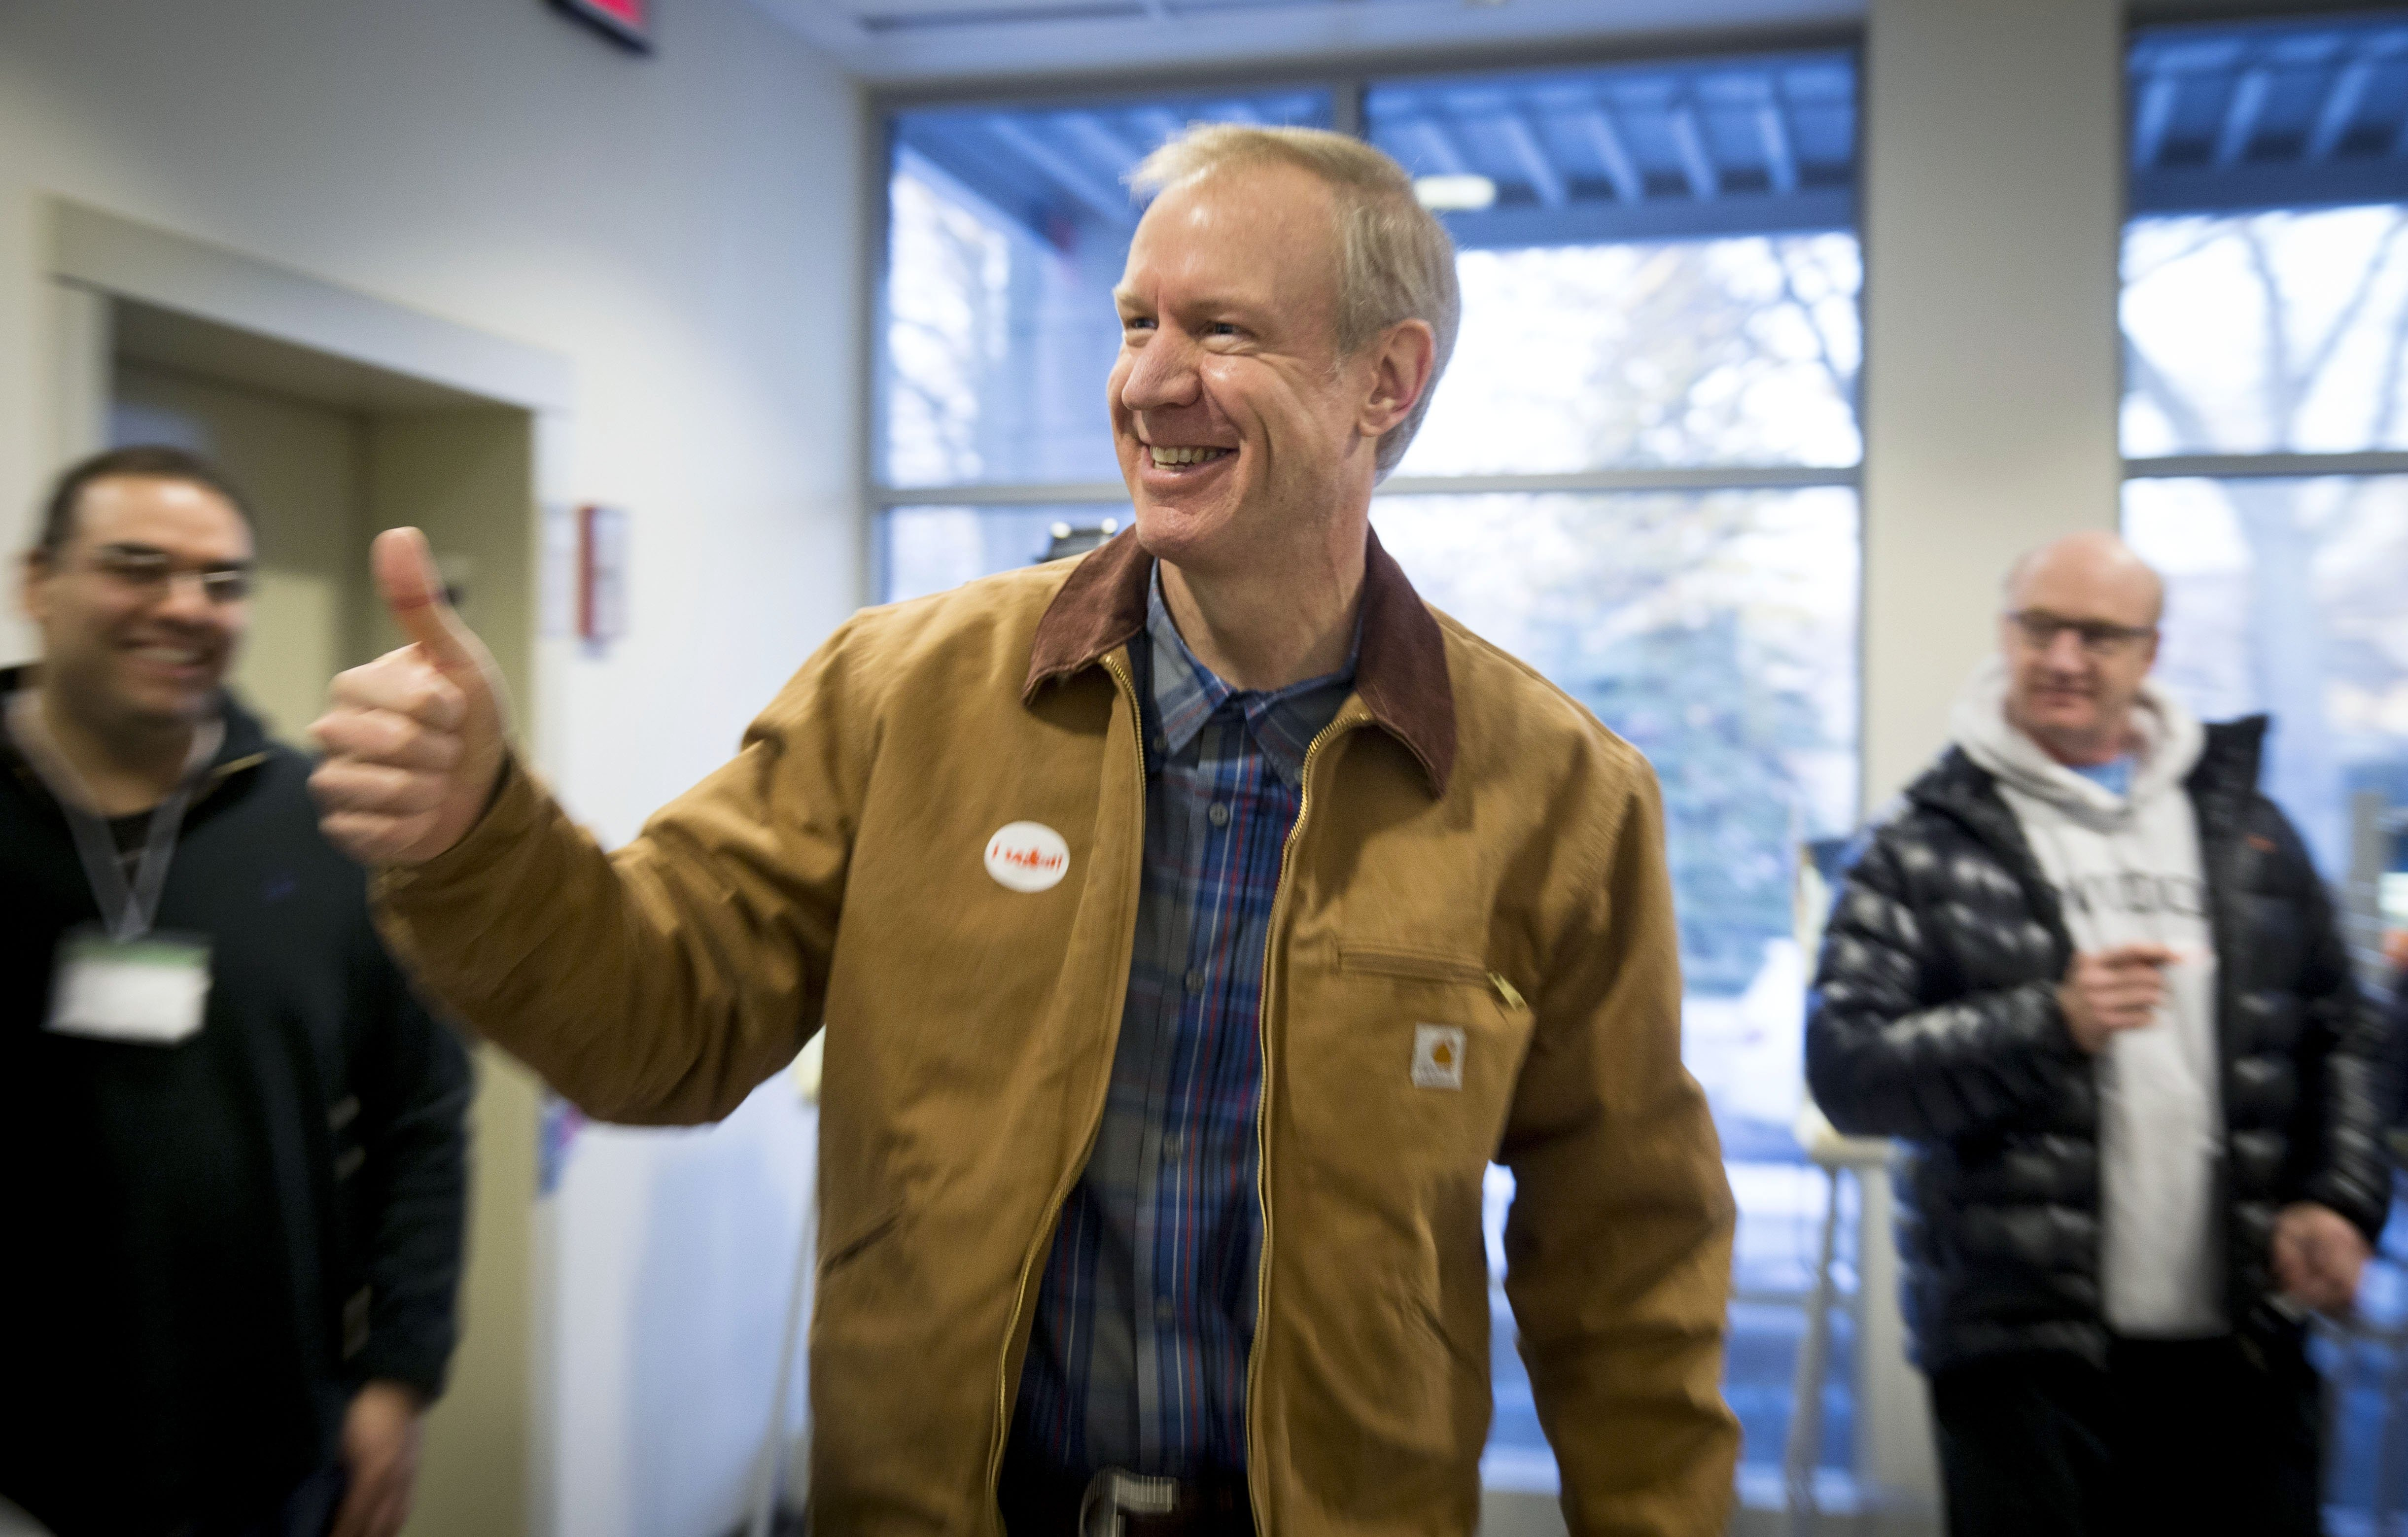 Illinois Republican gubernatorial candidate Bruce Rauner exits the polling place after voting in Winnetka, Ill., March 18, 2014.